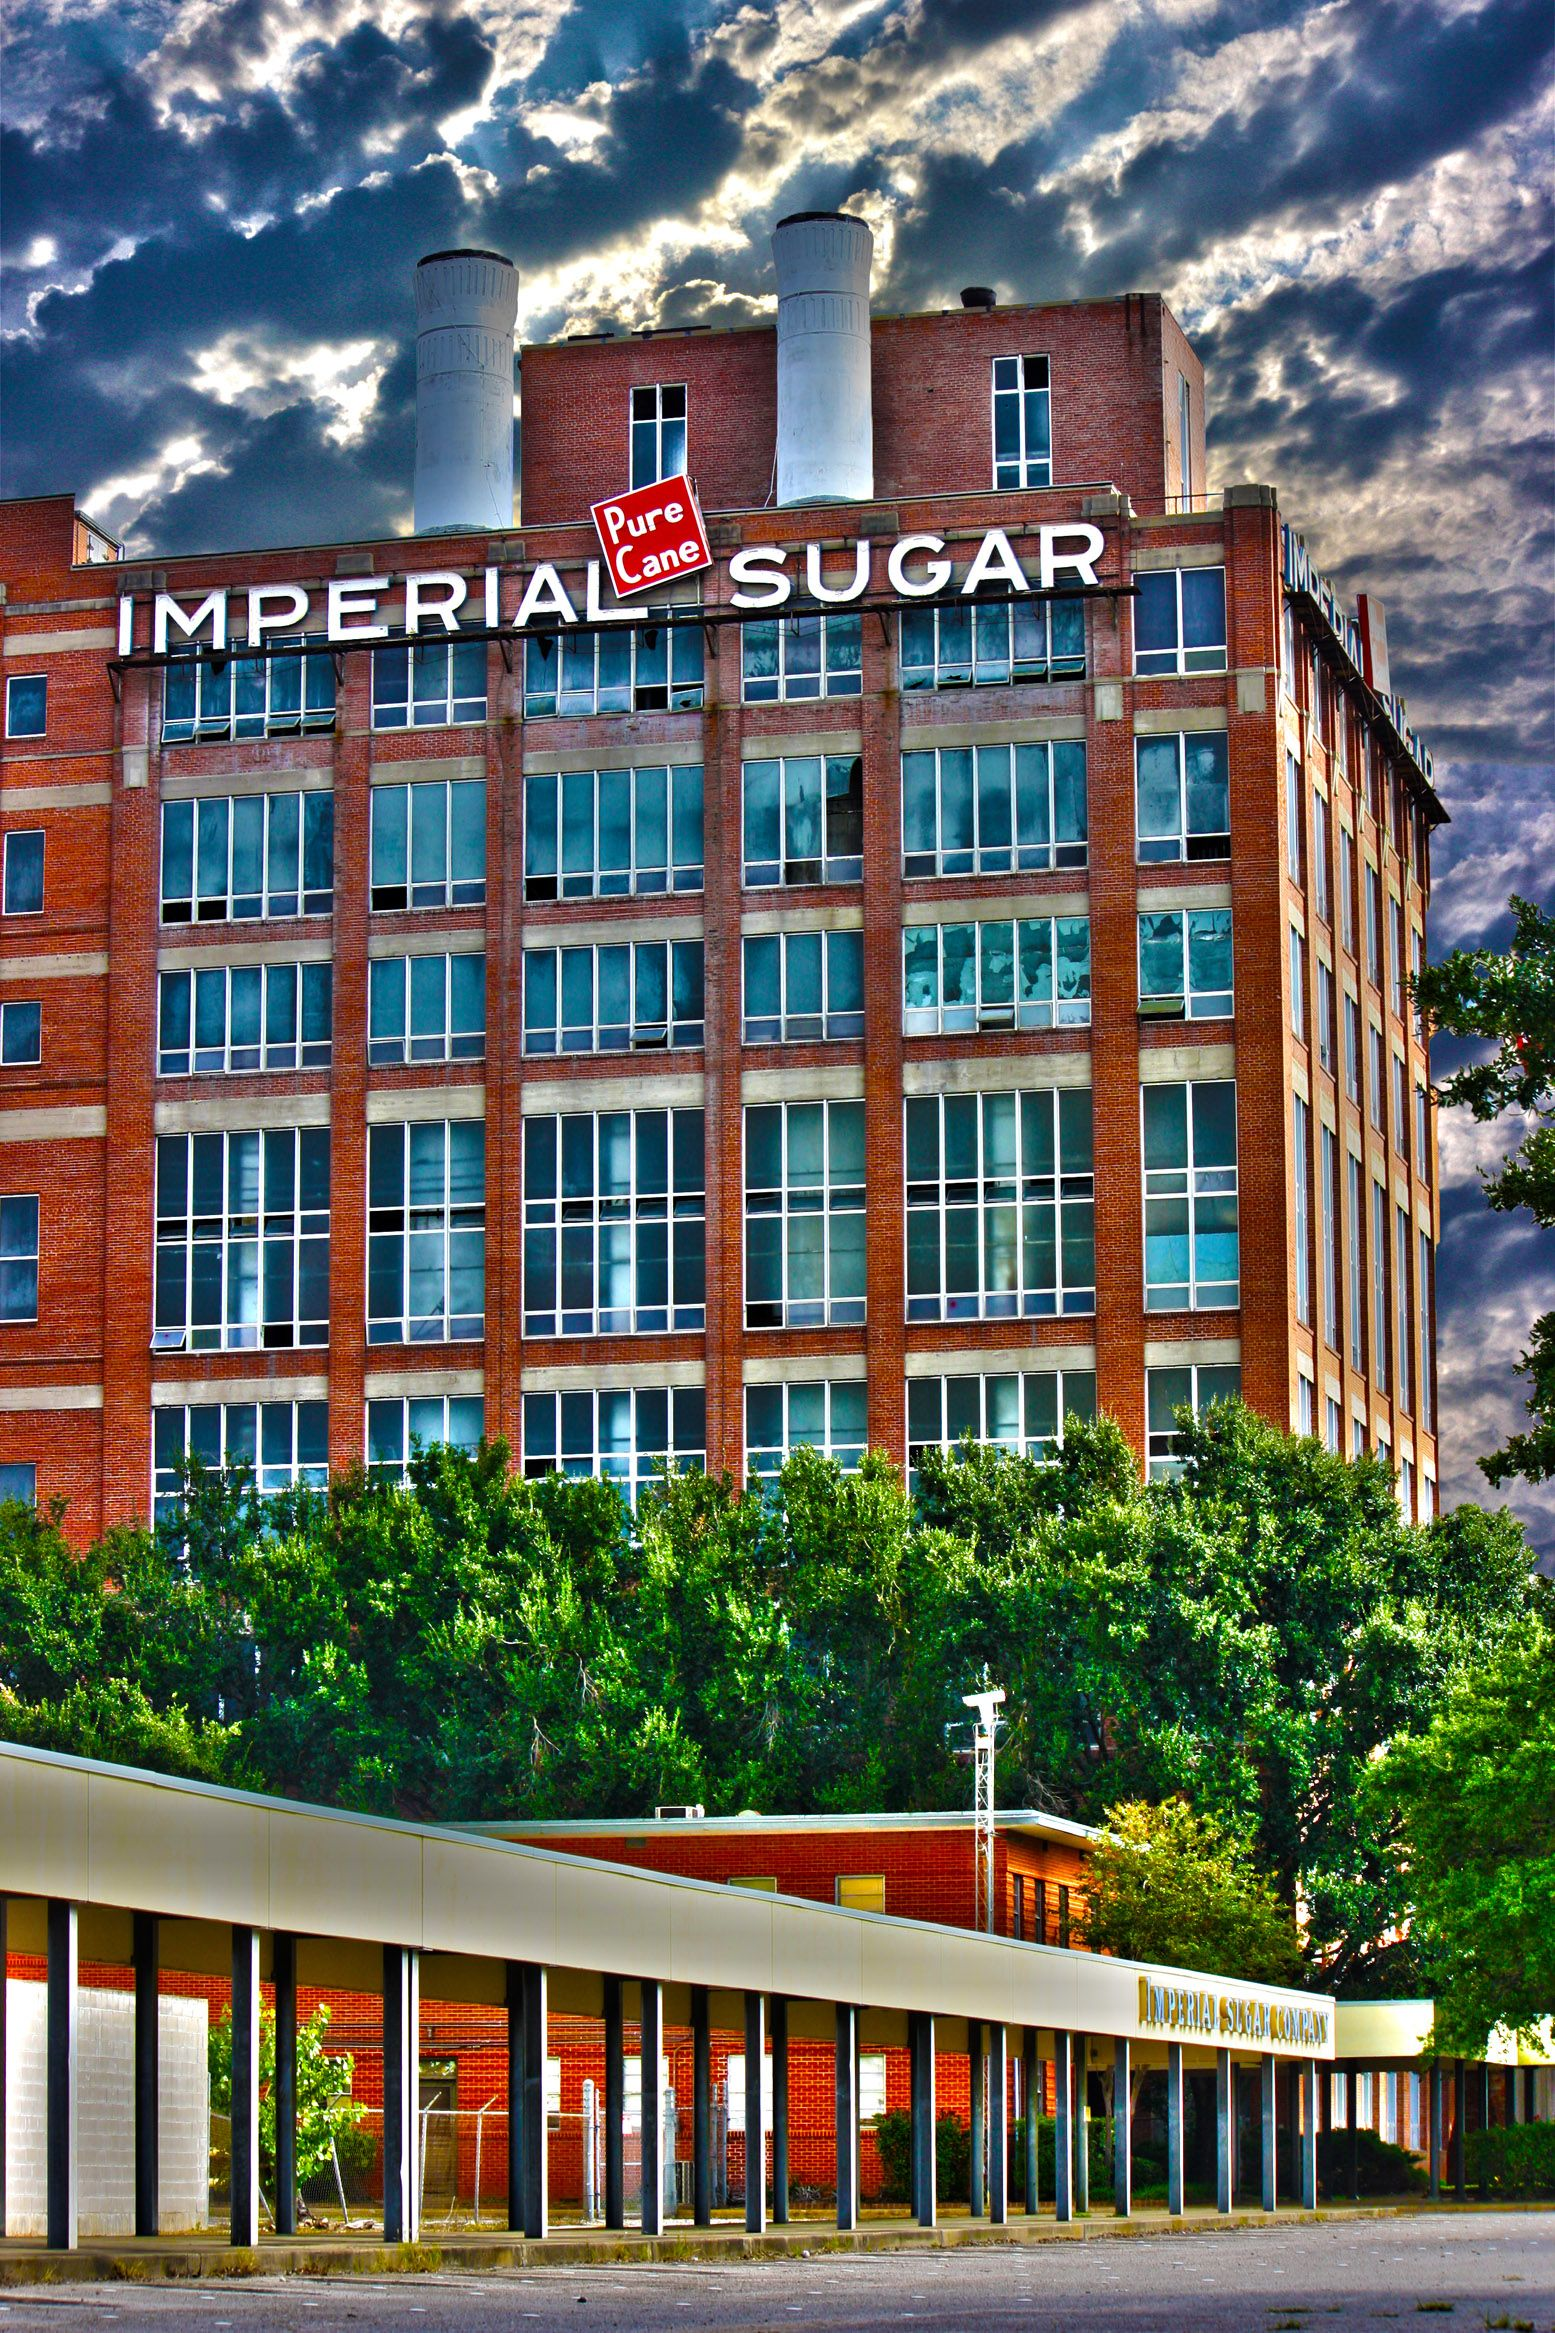 Sugar Land Is Home To The Headquarters Of Imperial Sugar And The Company S Main Sugar Refinery And Distribution Cent Favorite Places Loving Texas Places To See